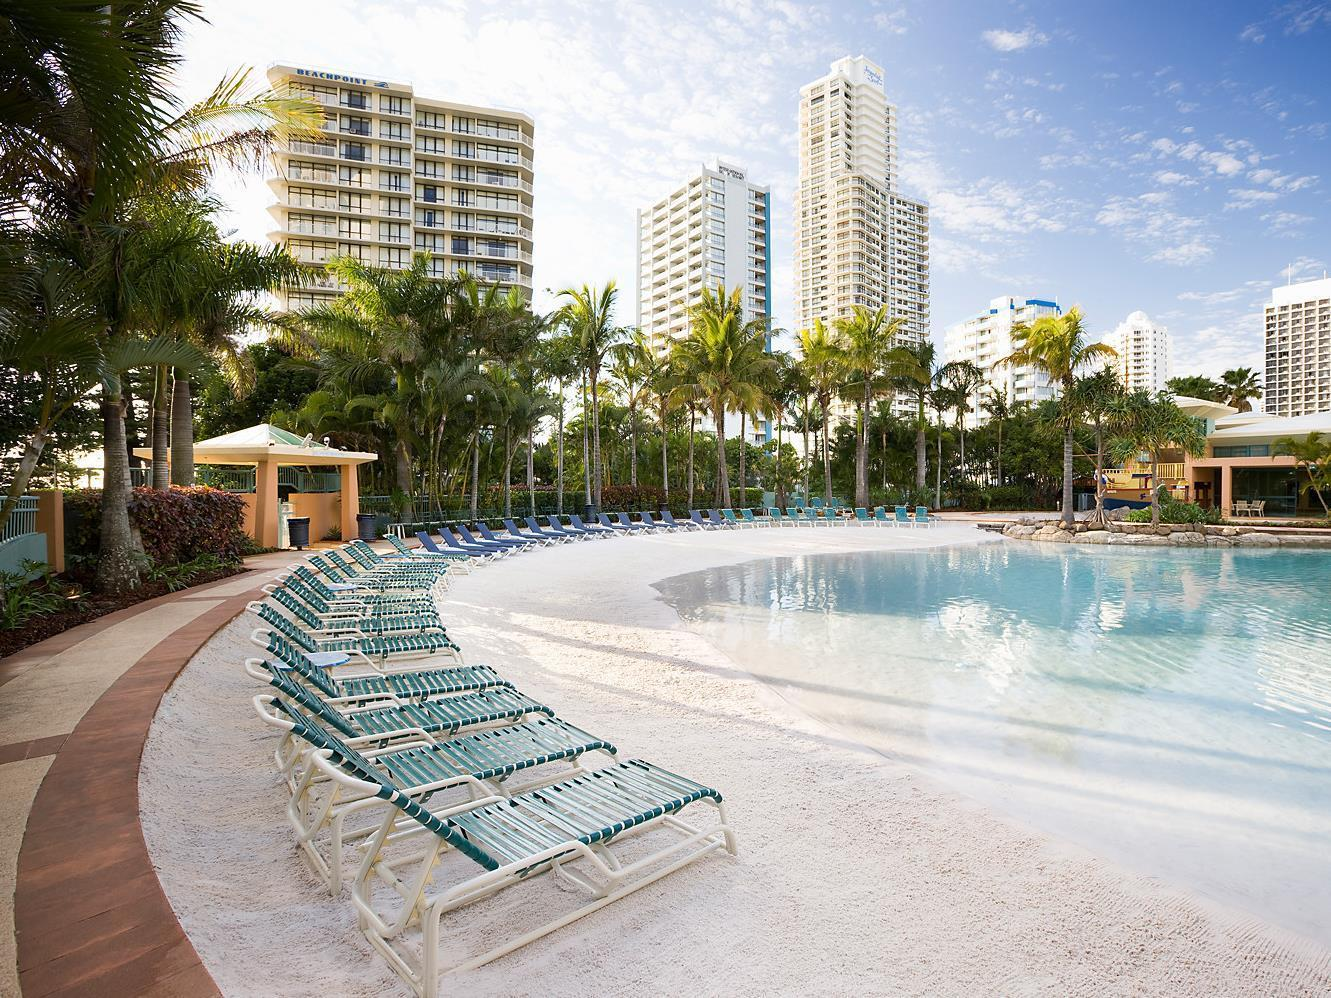 Mantra Crown Towers Resort Apartments